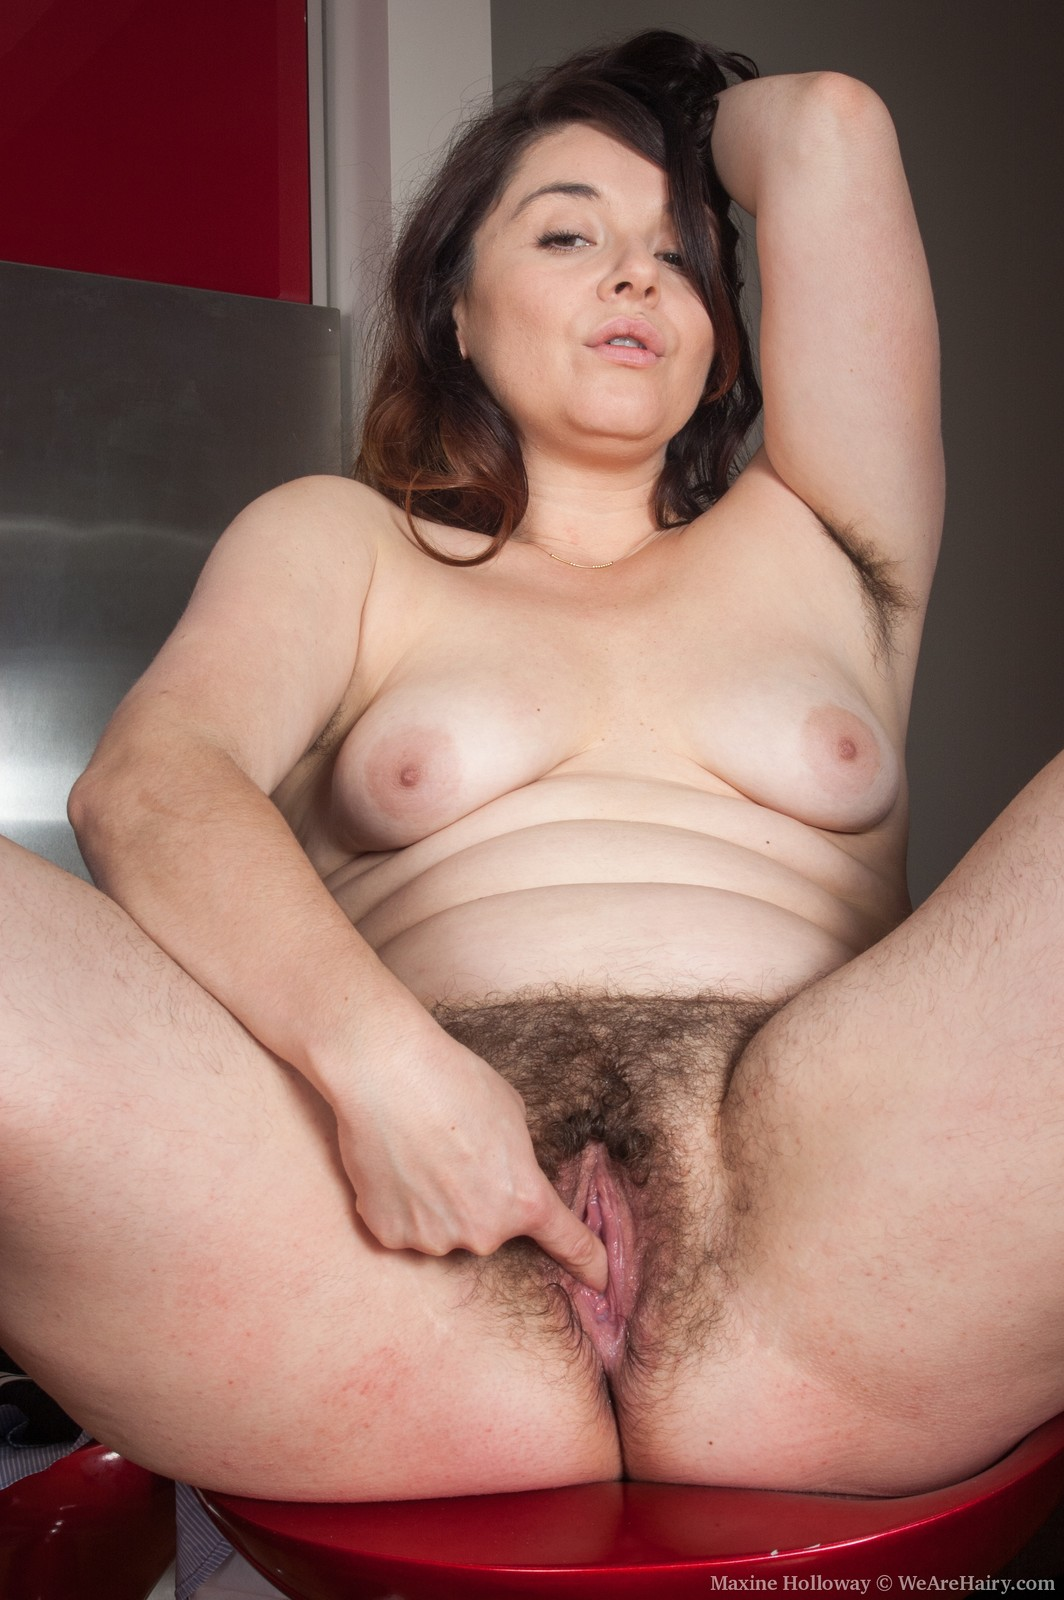 Visible, maxine holloway hairy have faced